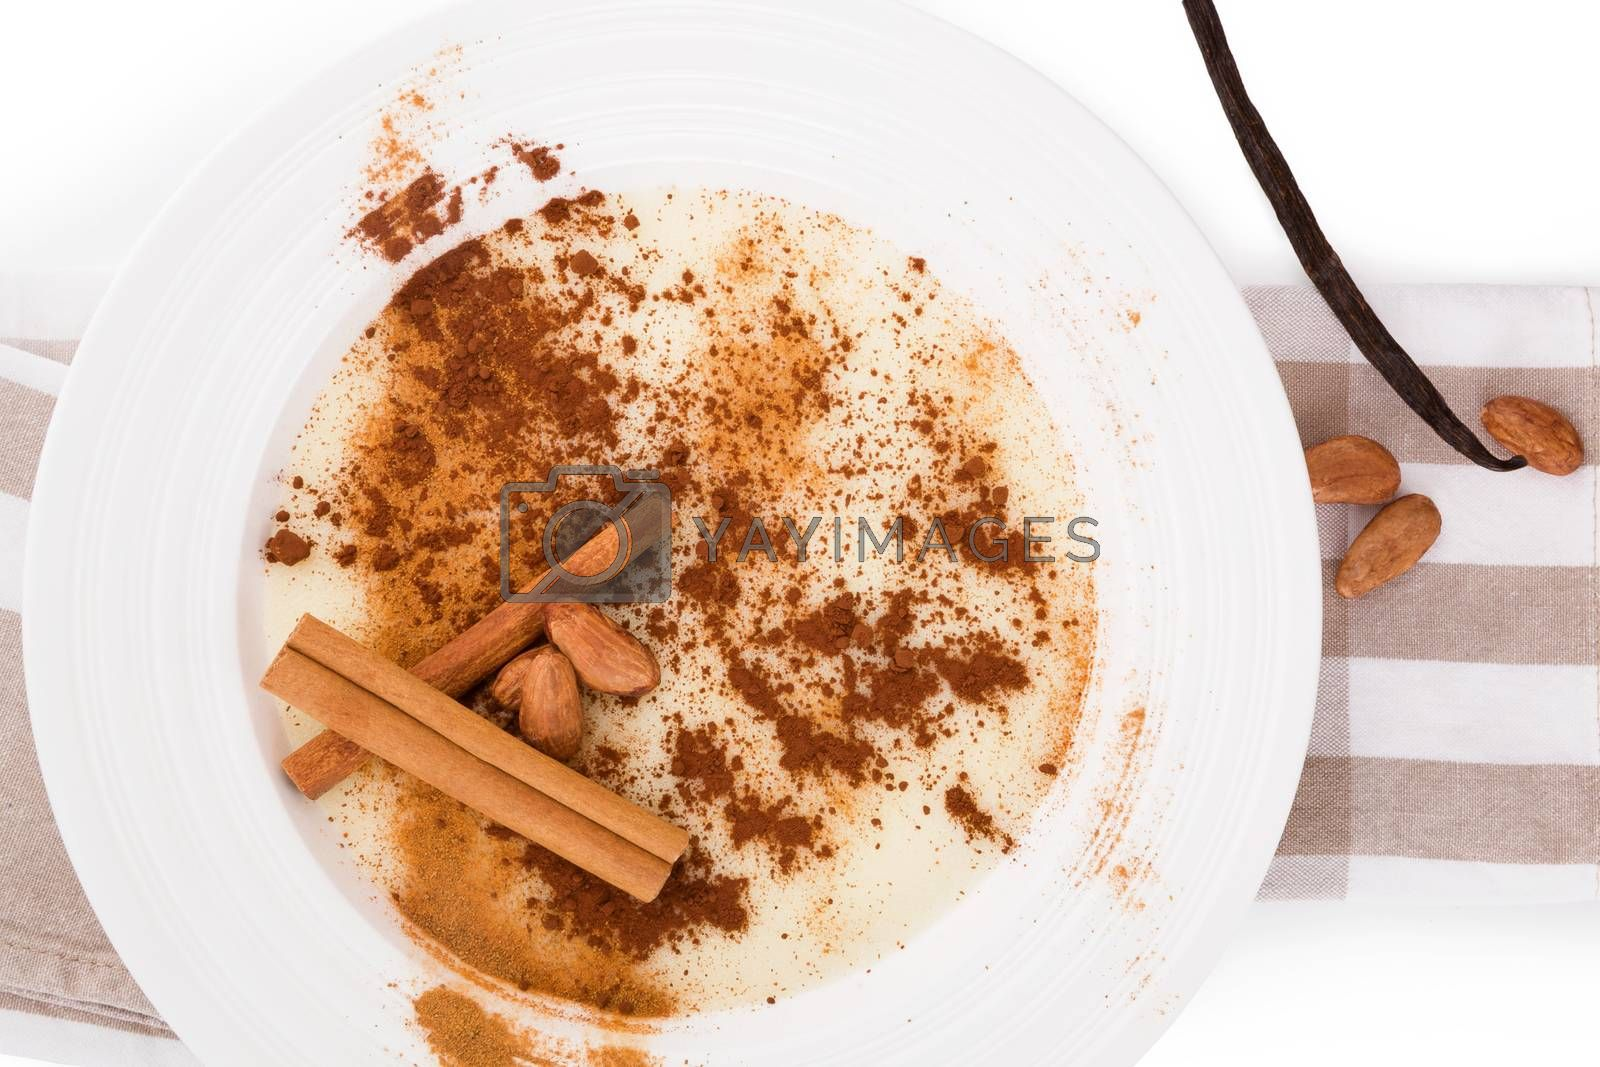 Delicious porridge breakfast with cinnamon and cocoa powder. Traditional breakfast eating.